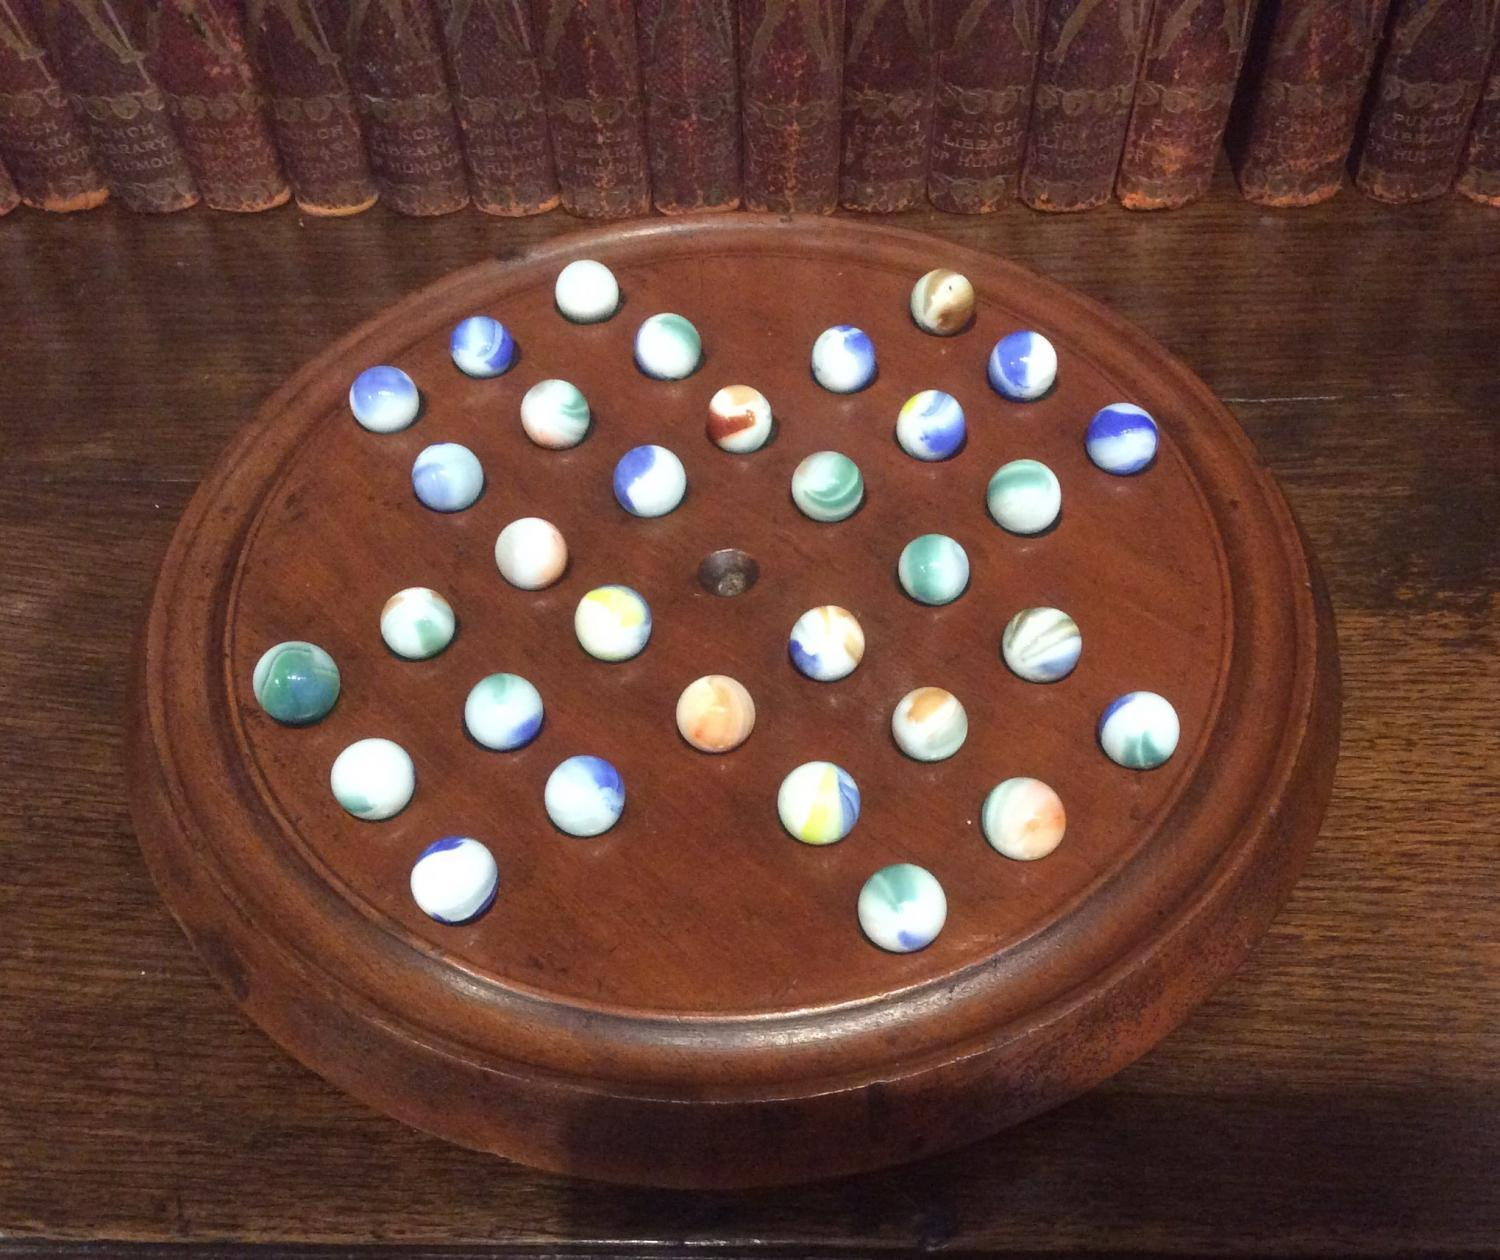 Solitaire Board Game with Marbles